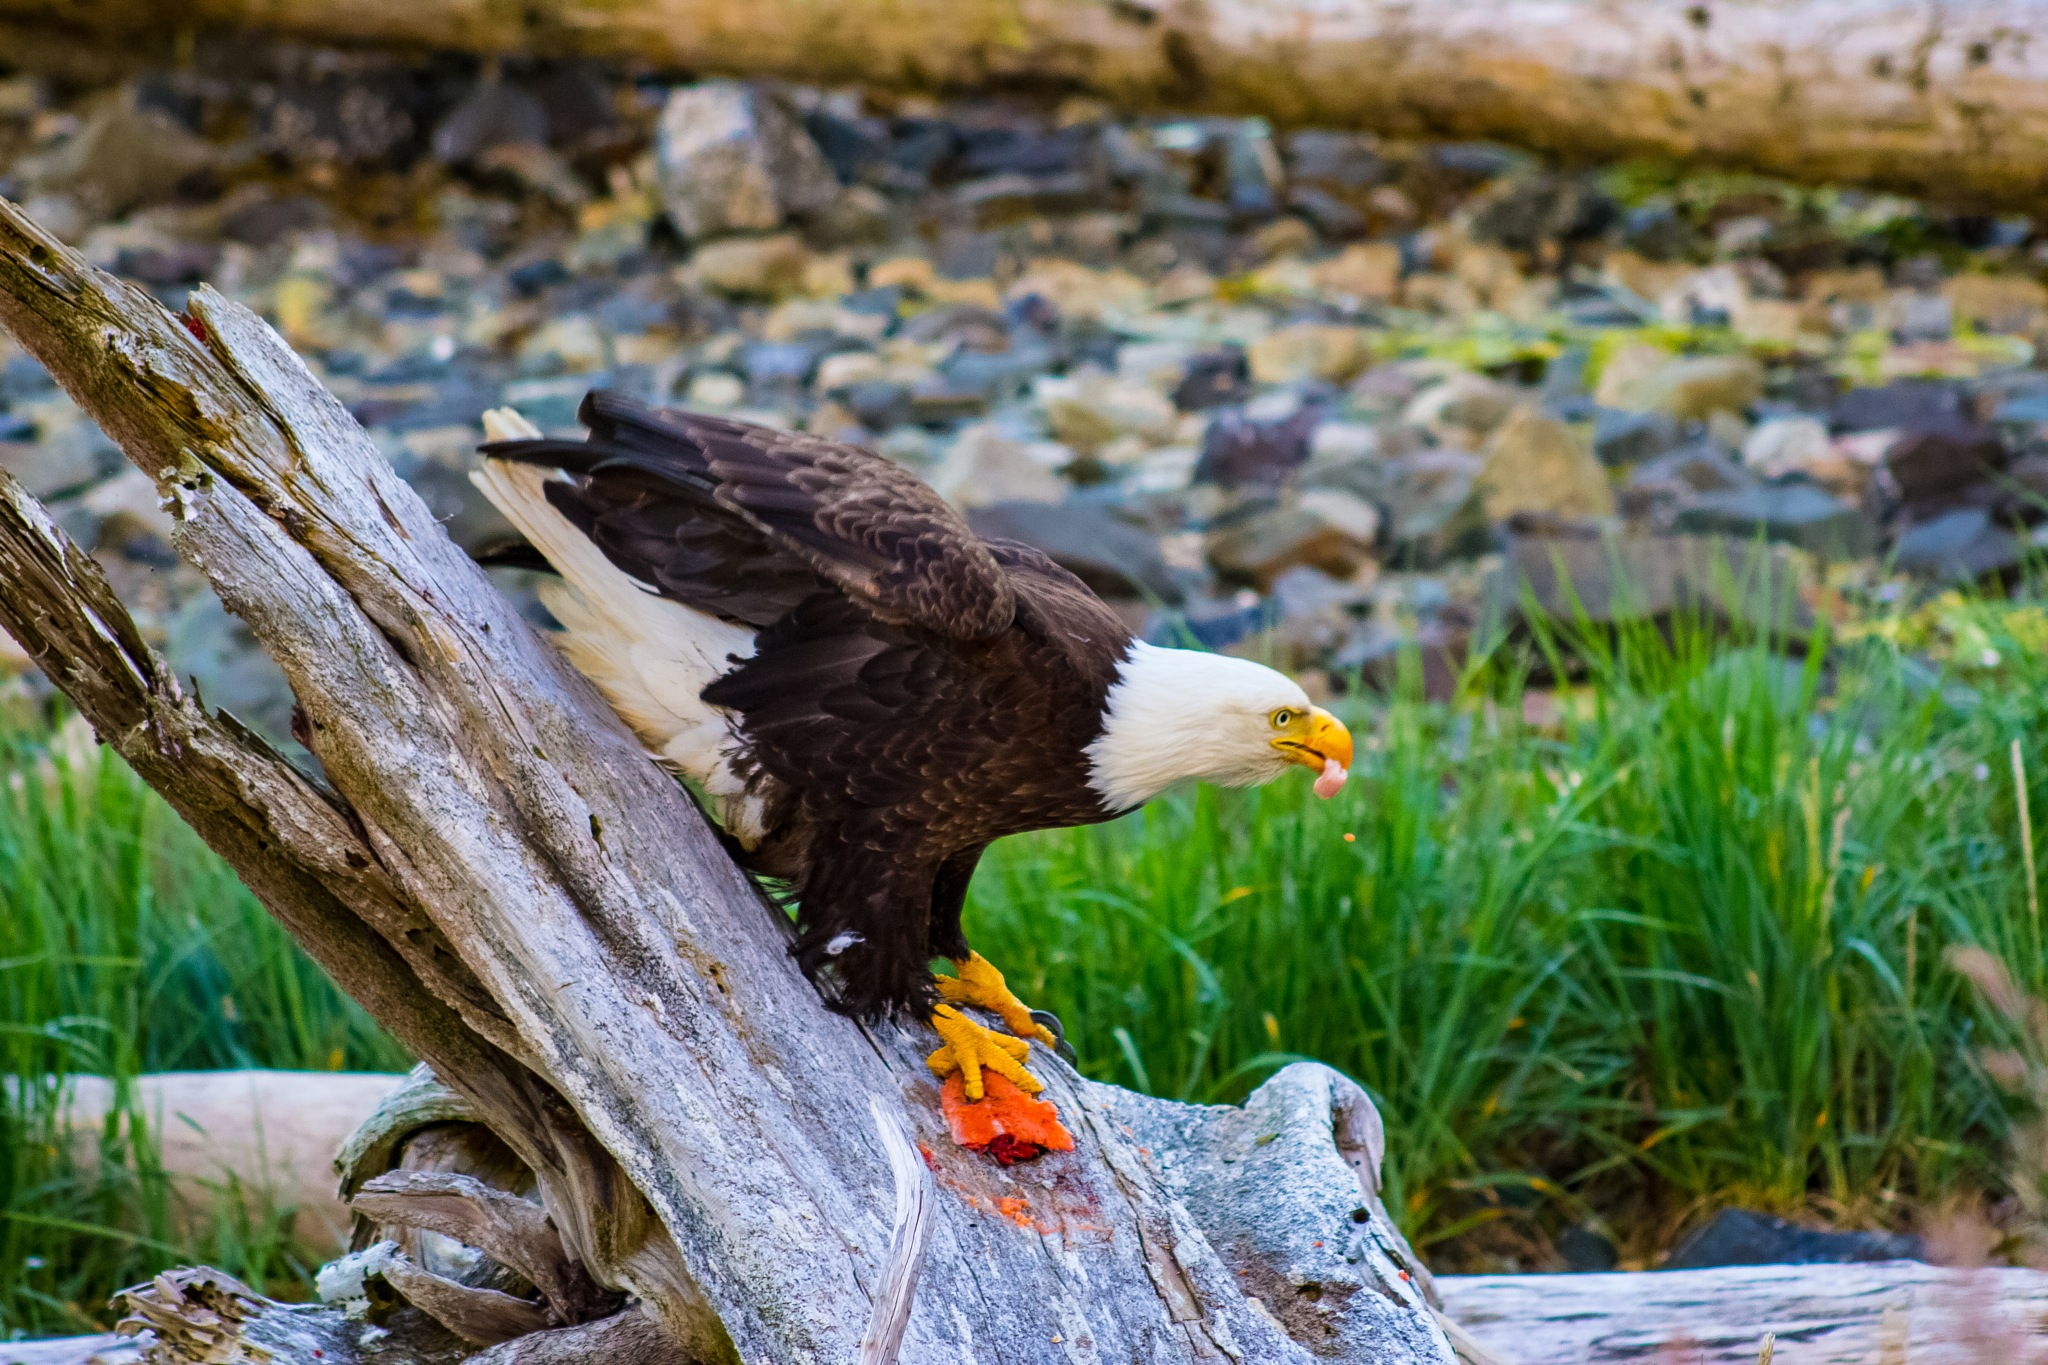 The Bald Eagle by Timeless Group